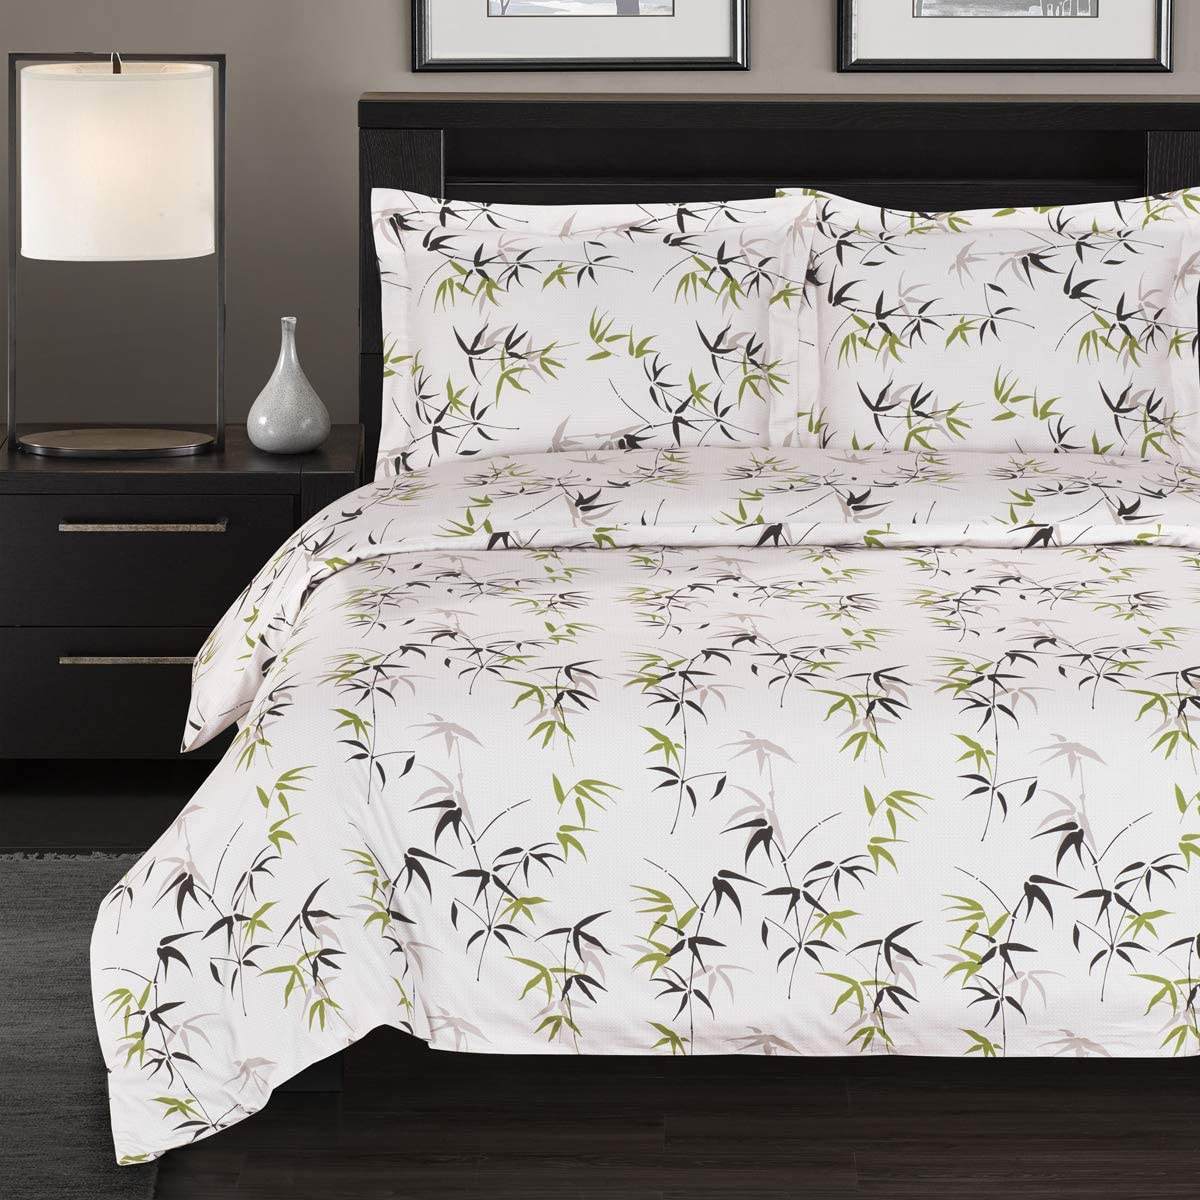 Luxury 300 Thread Count Full/Queen Sized Bamboo Tree Printed Duvet Set; Tropical Printed 100% Pure Cotton Fabric